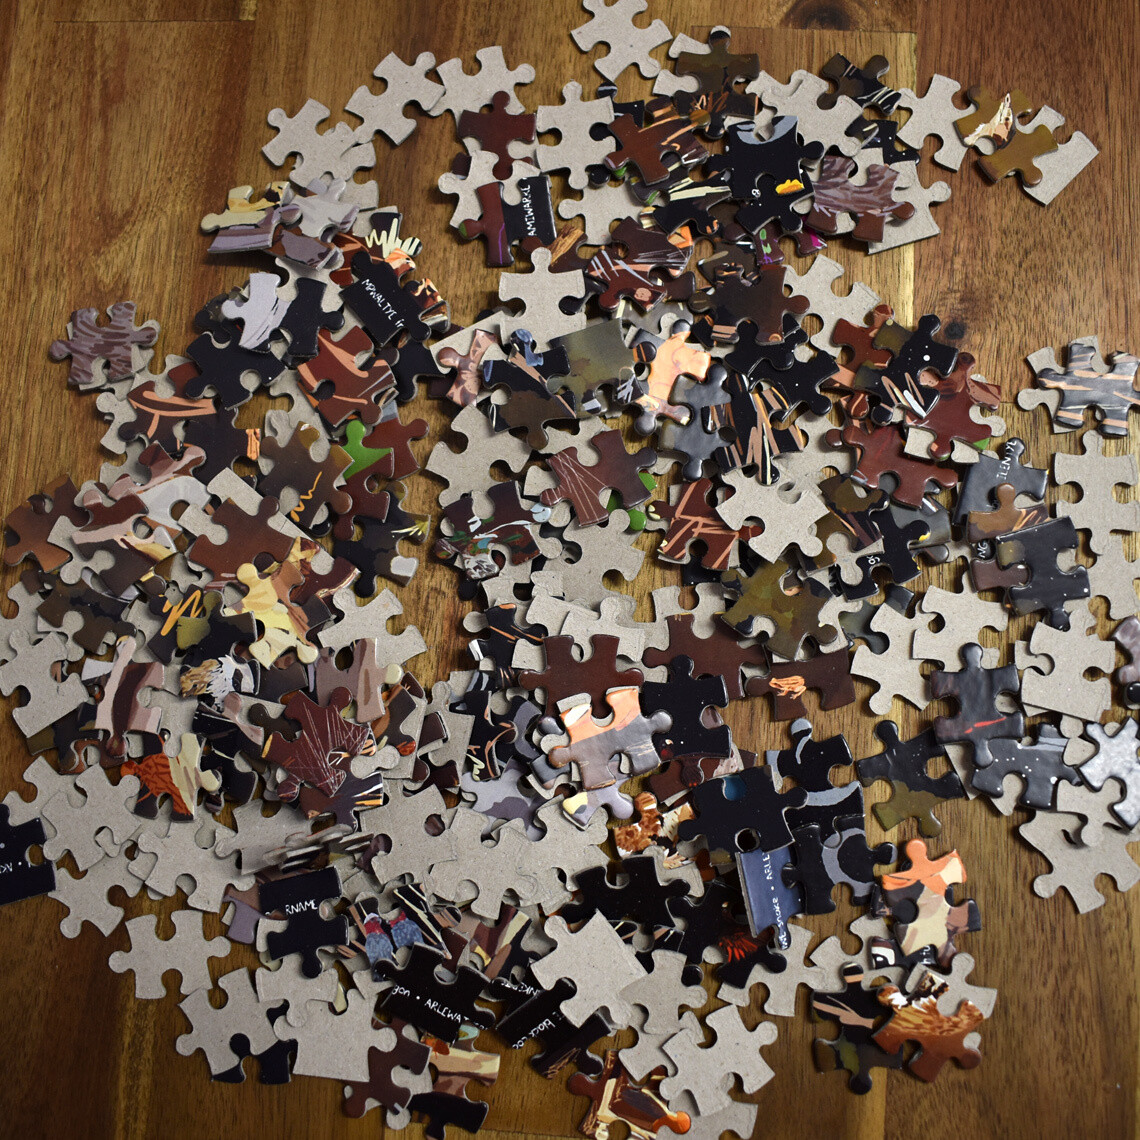 Iwenhe Arratintyeme Ingwele? (What Comes Out At Night?) Jigsaw Puzzle